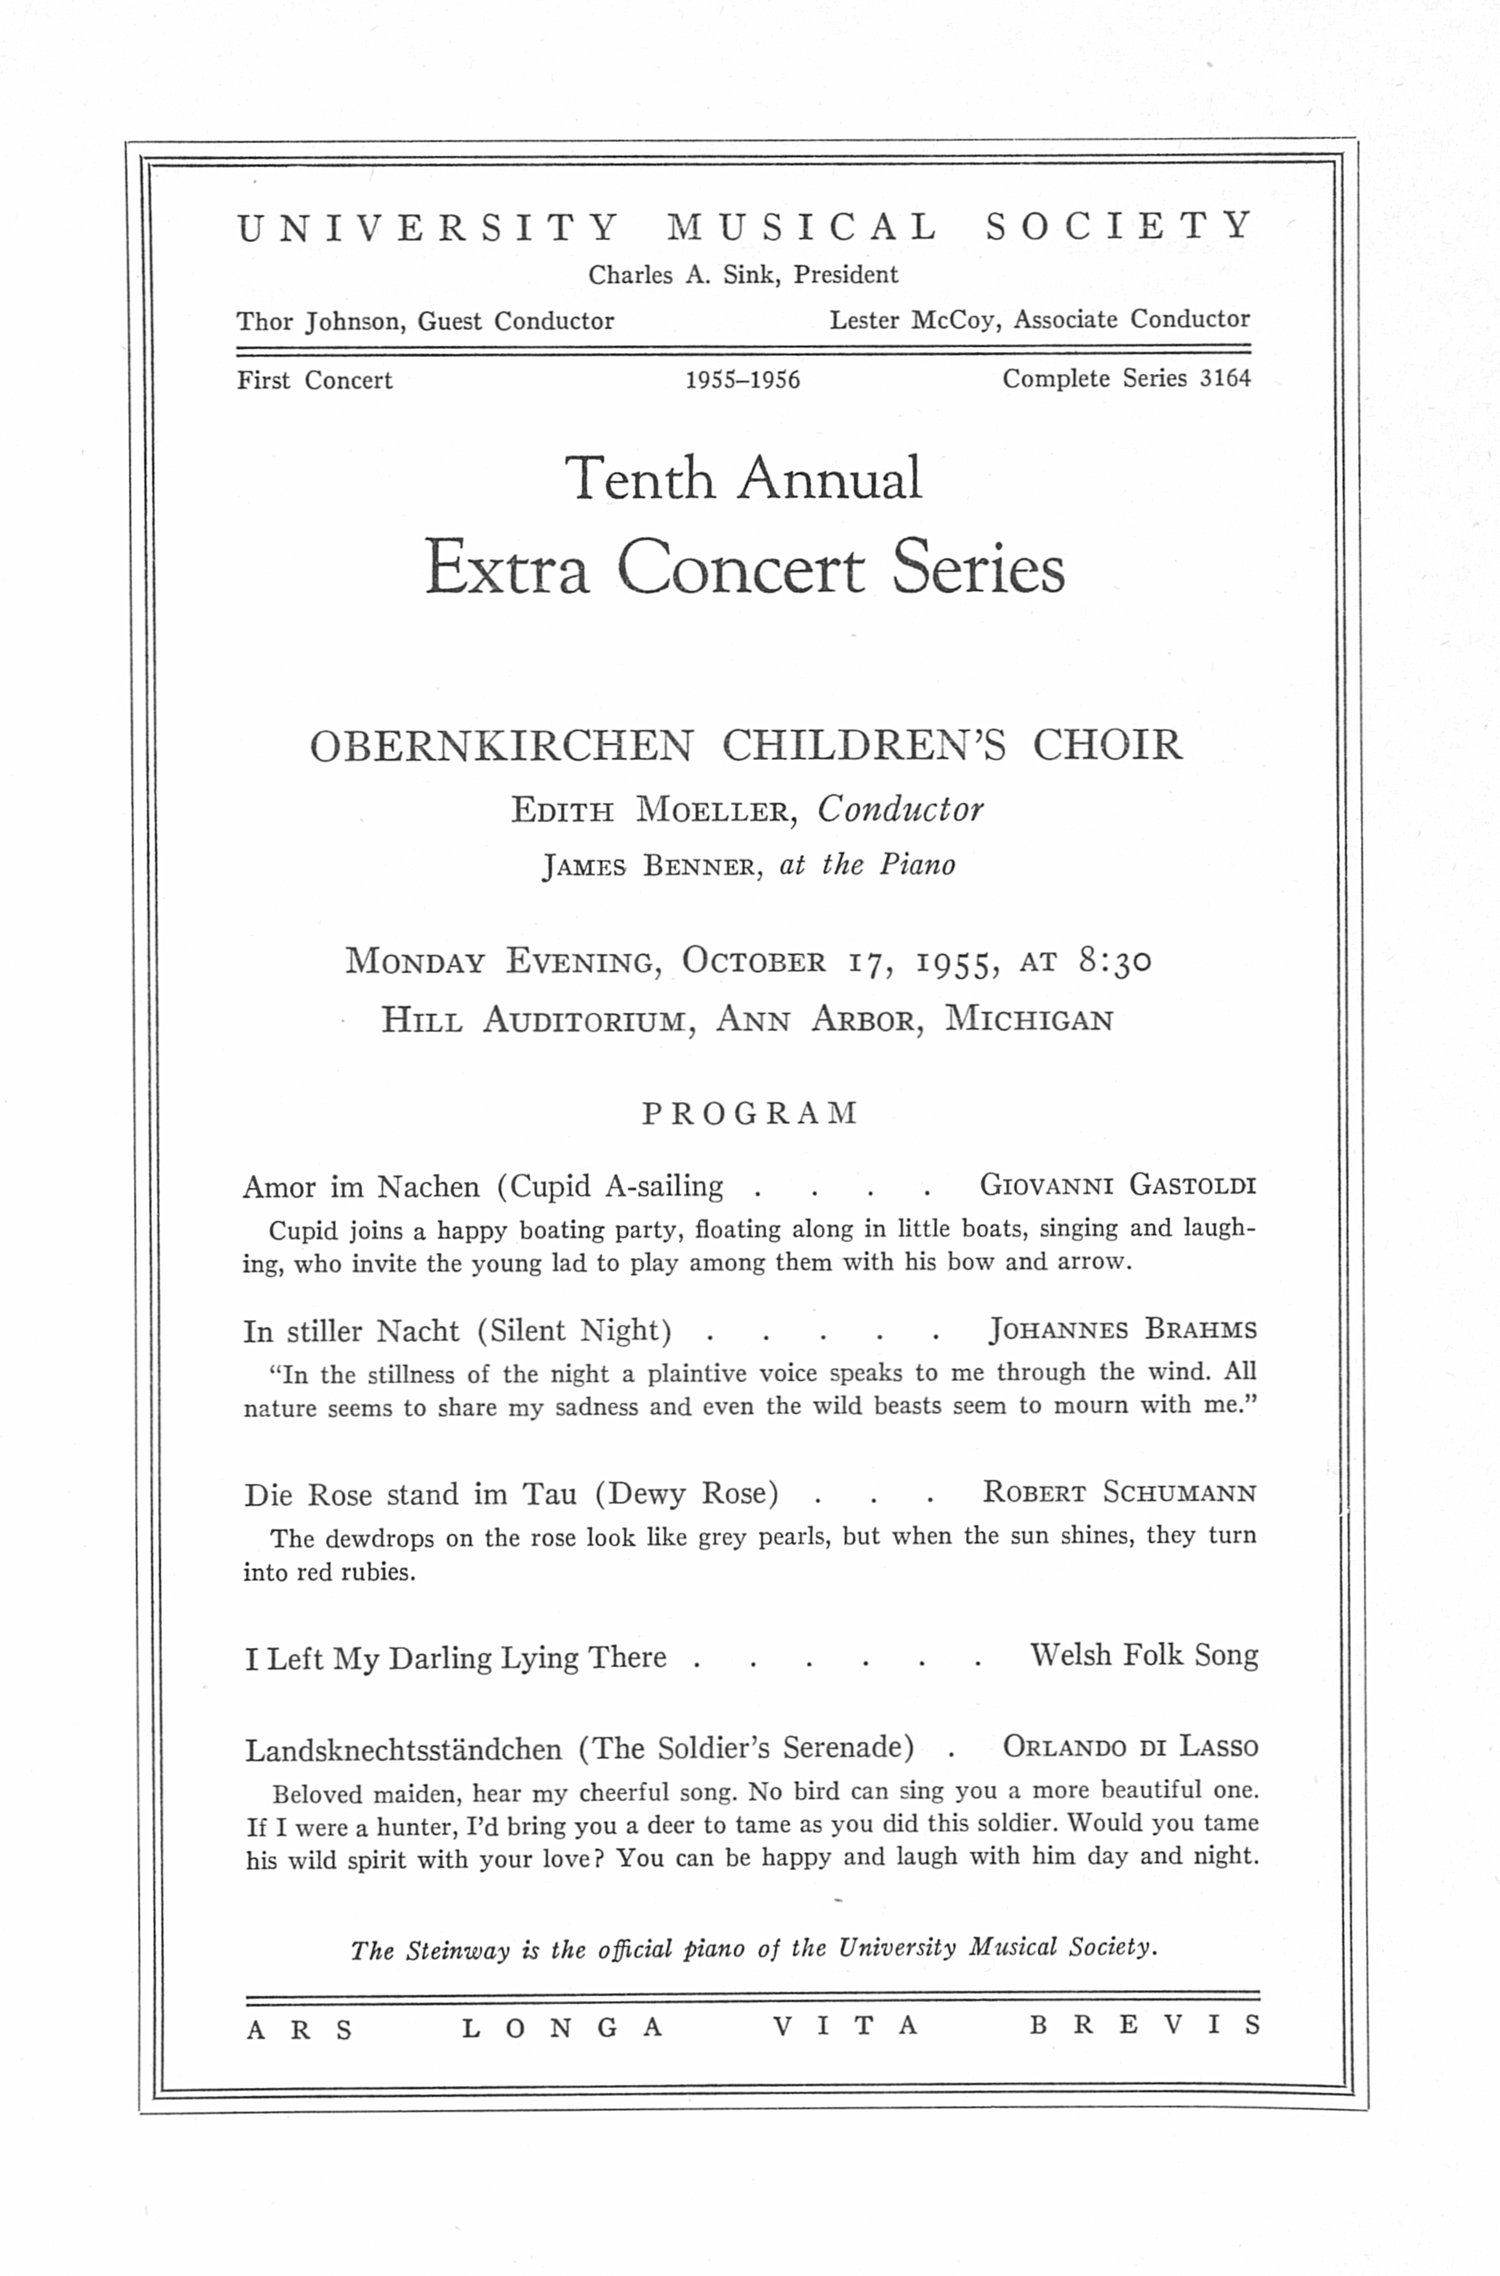 UMS Concert Program, October 17, 1955: Tenth Annual Extra Concert Series -- Edith Moeller image